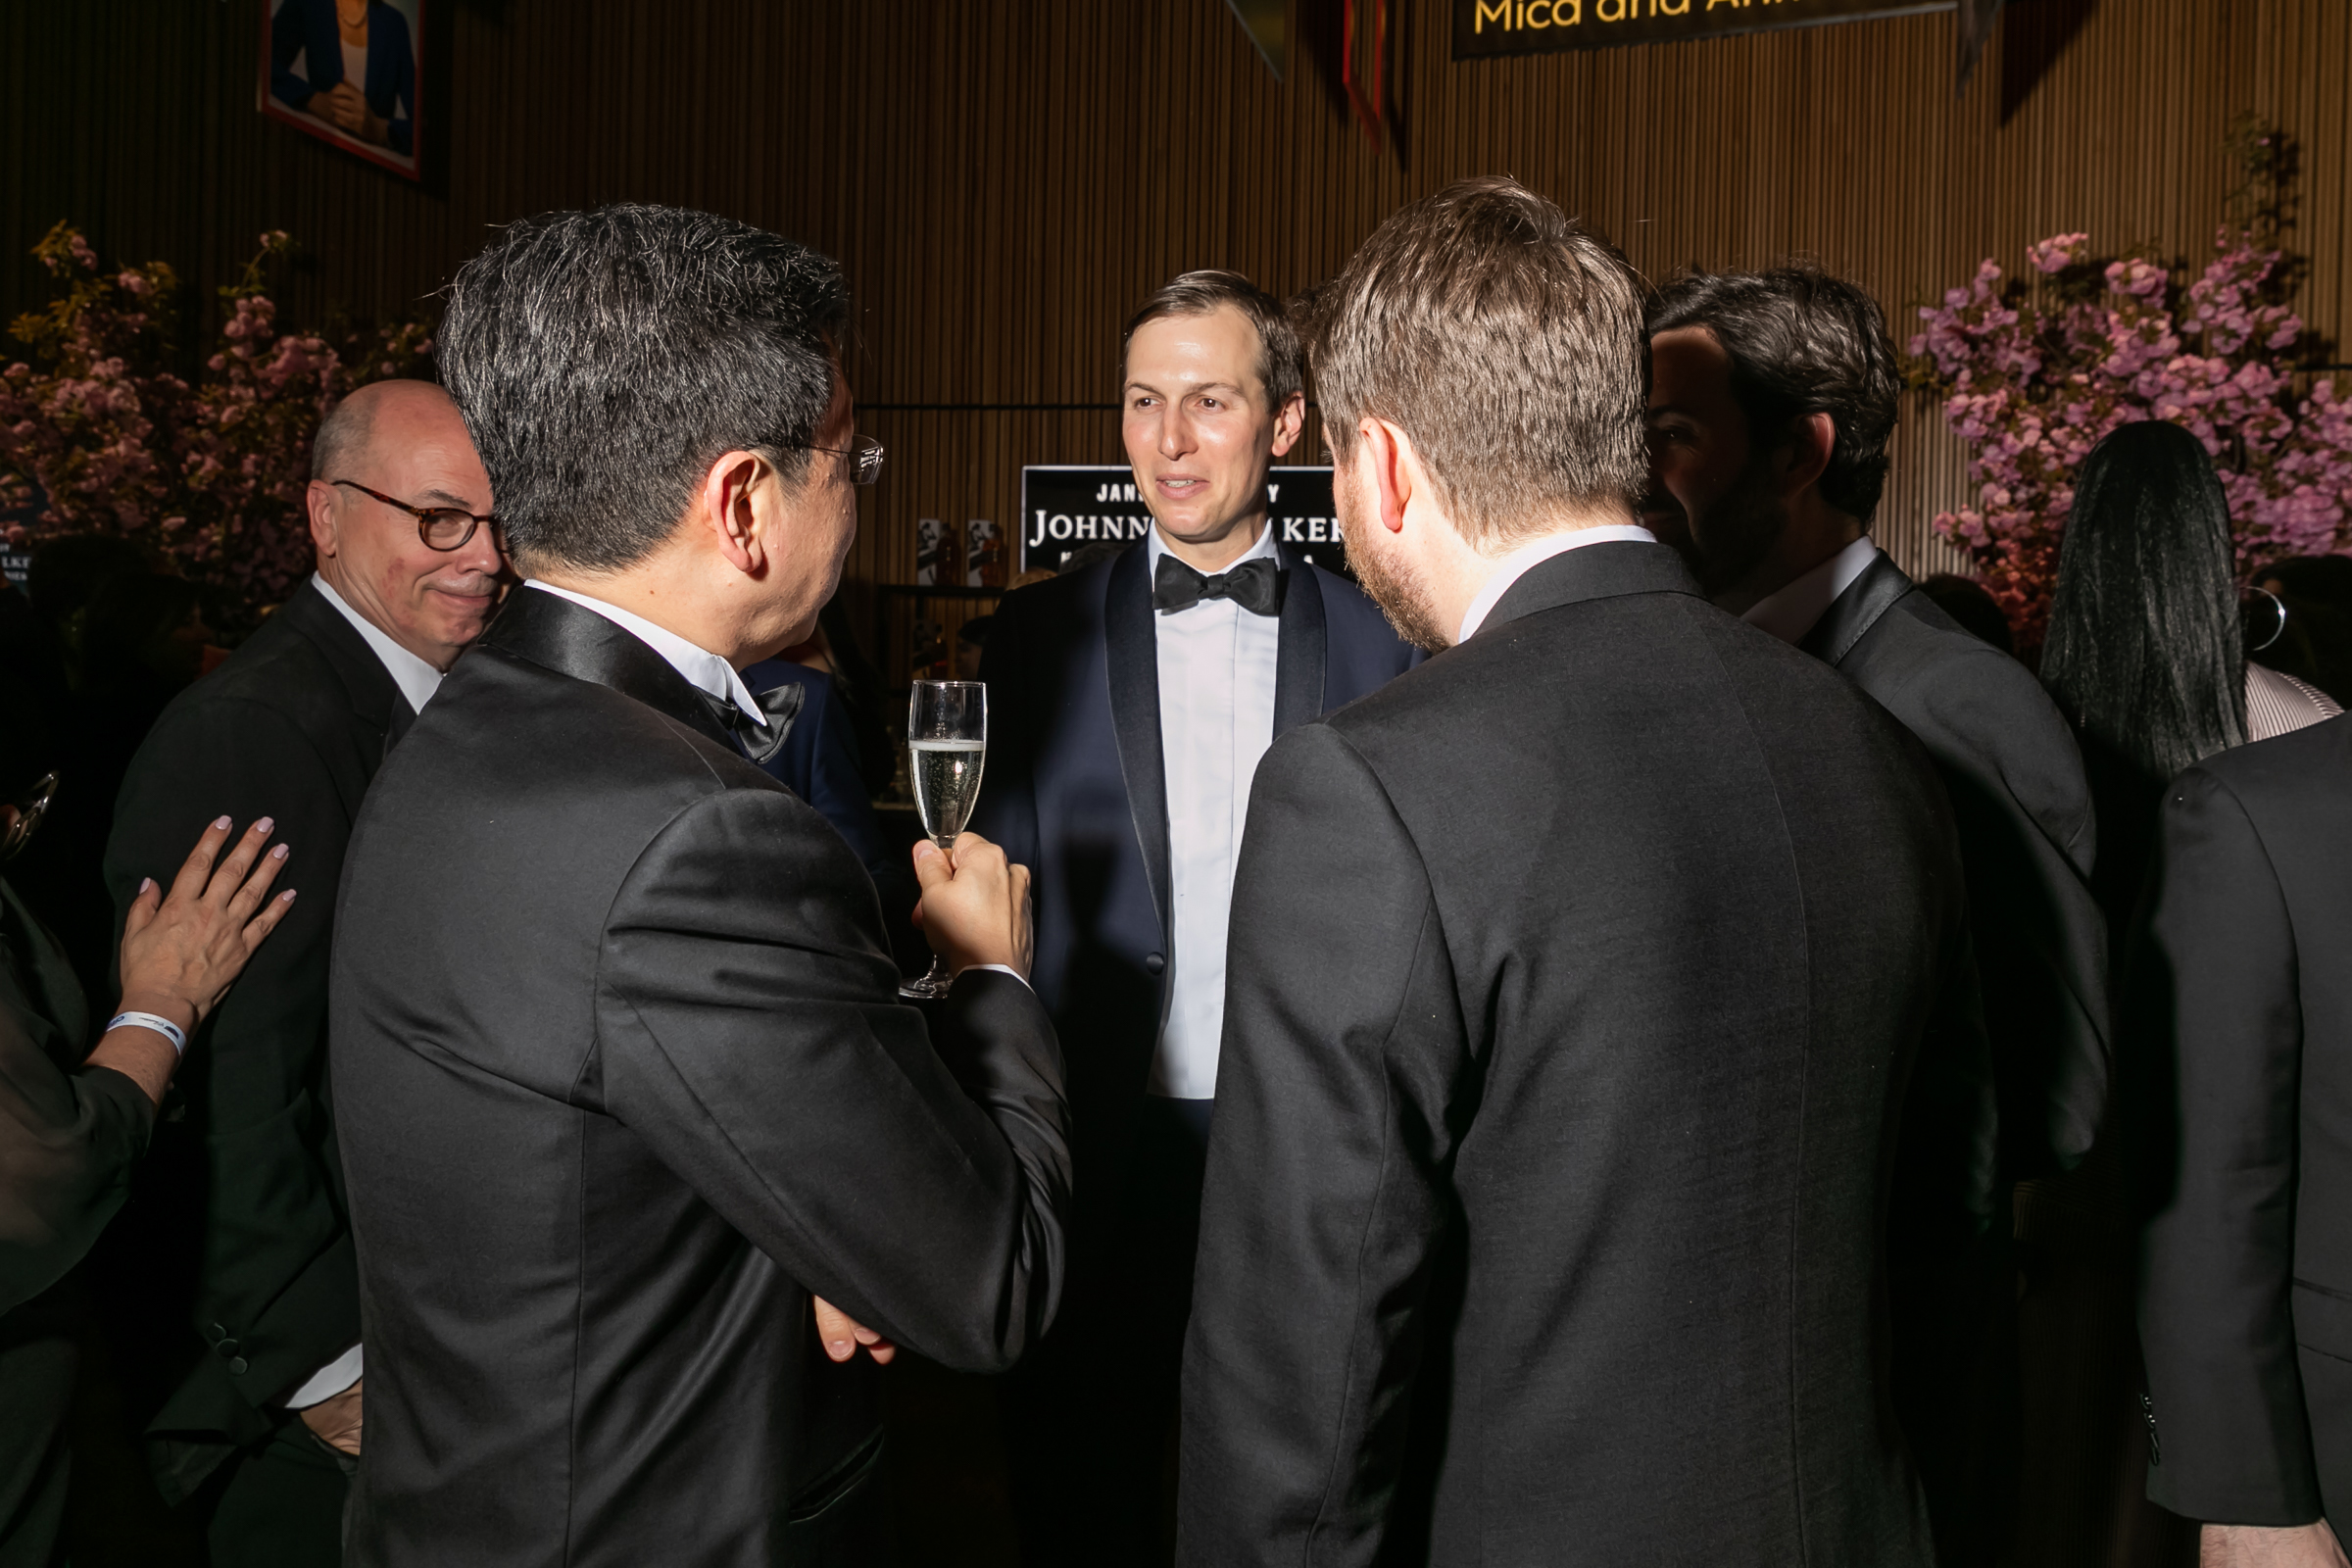 Jared Kushner at the Time 100 Gala at Jazz at Lincoln Center in New York City on April 23, 2019.